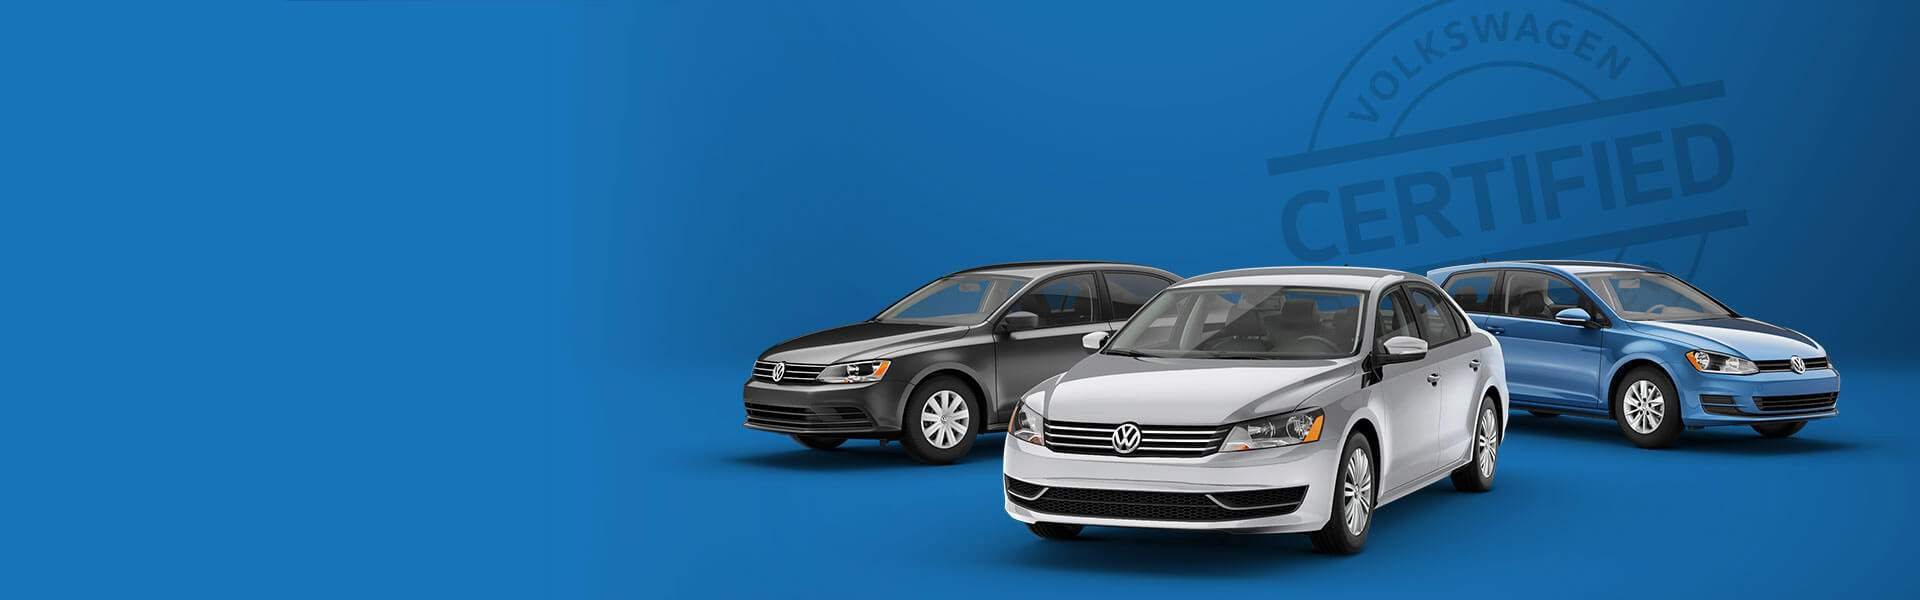 Volkswagen Certified Pre-Owned in Bay Ridge, NY